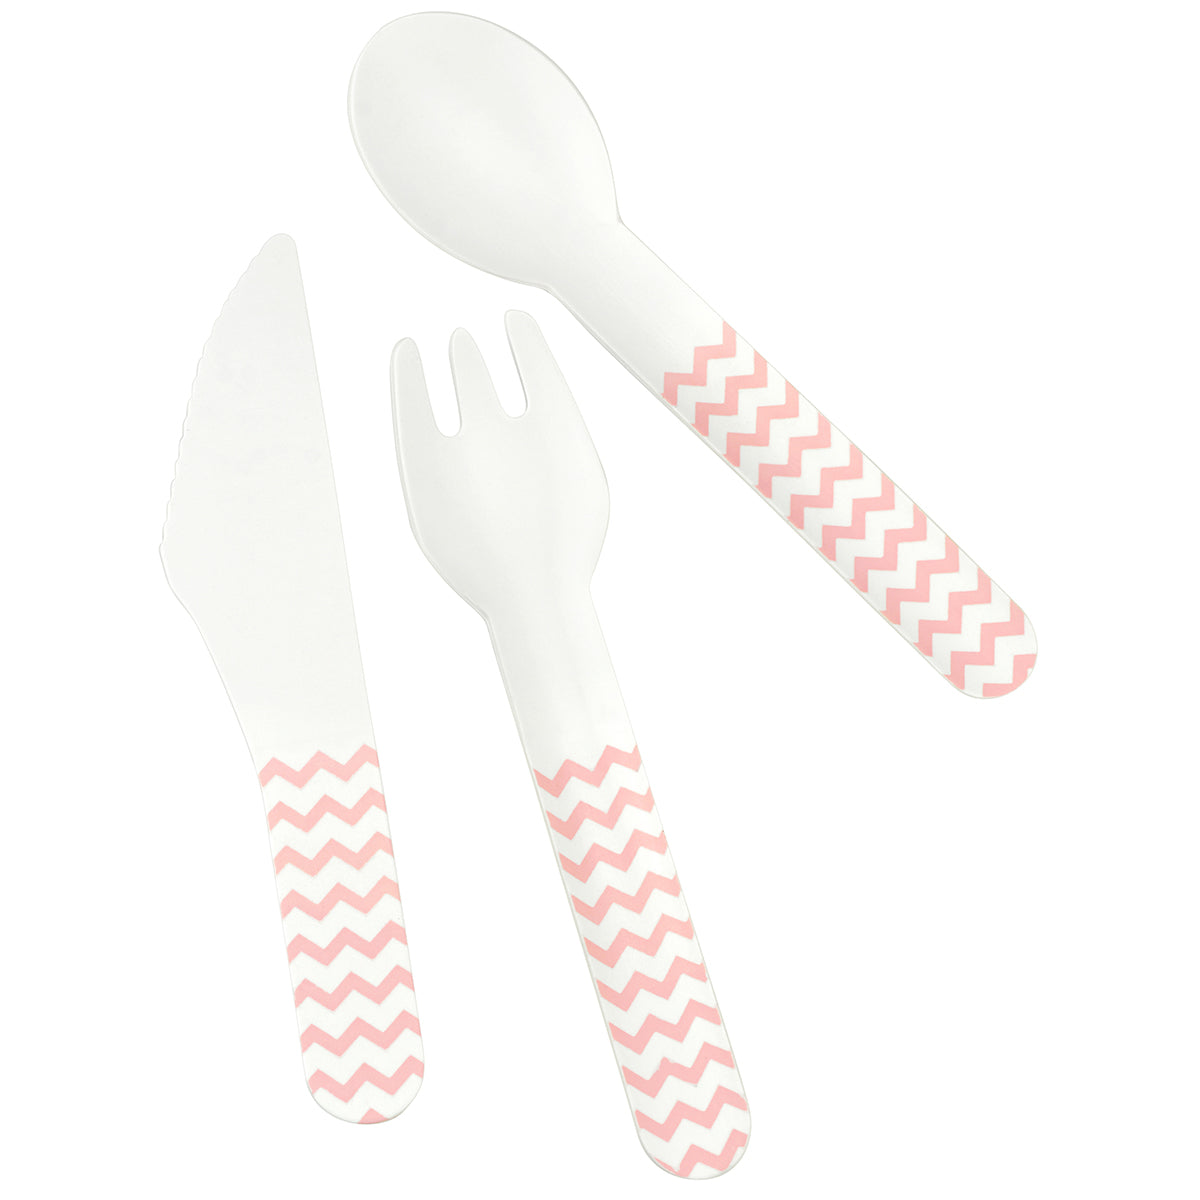 Displaying a set of paper cutlery with pink zigzag pattern, which includes knife, fork and spoon